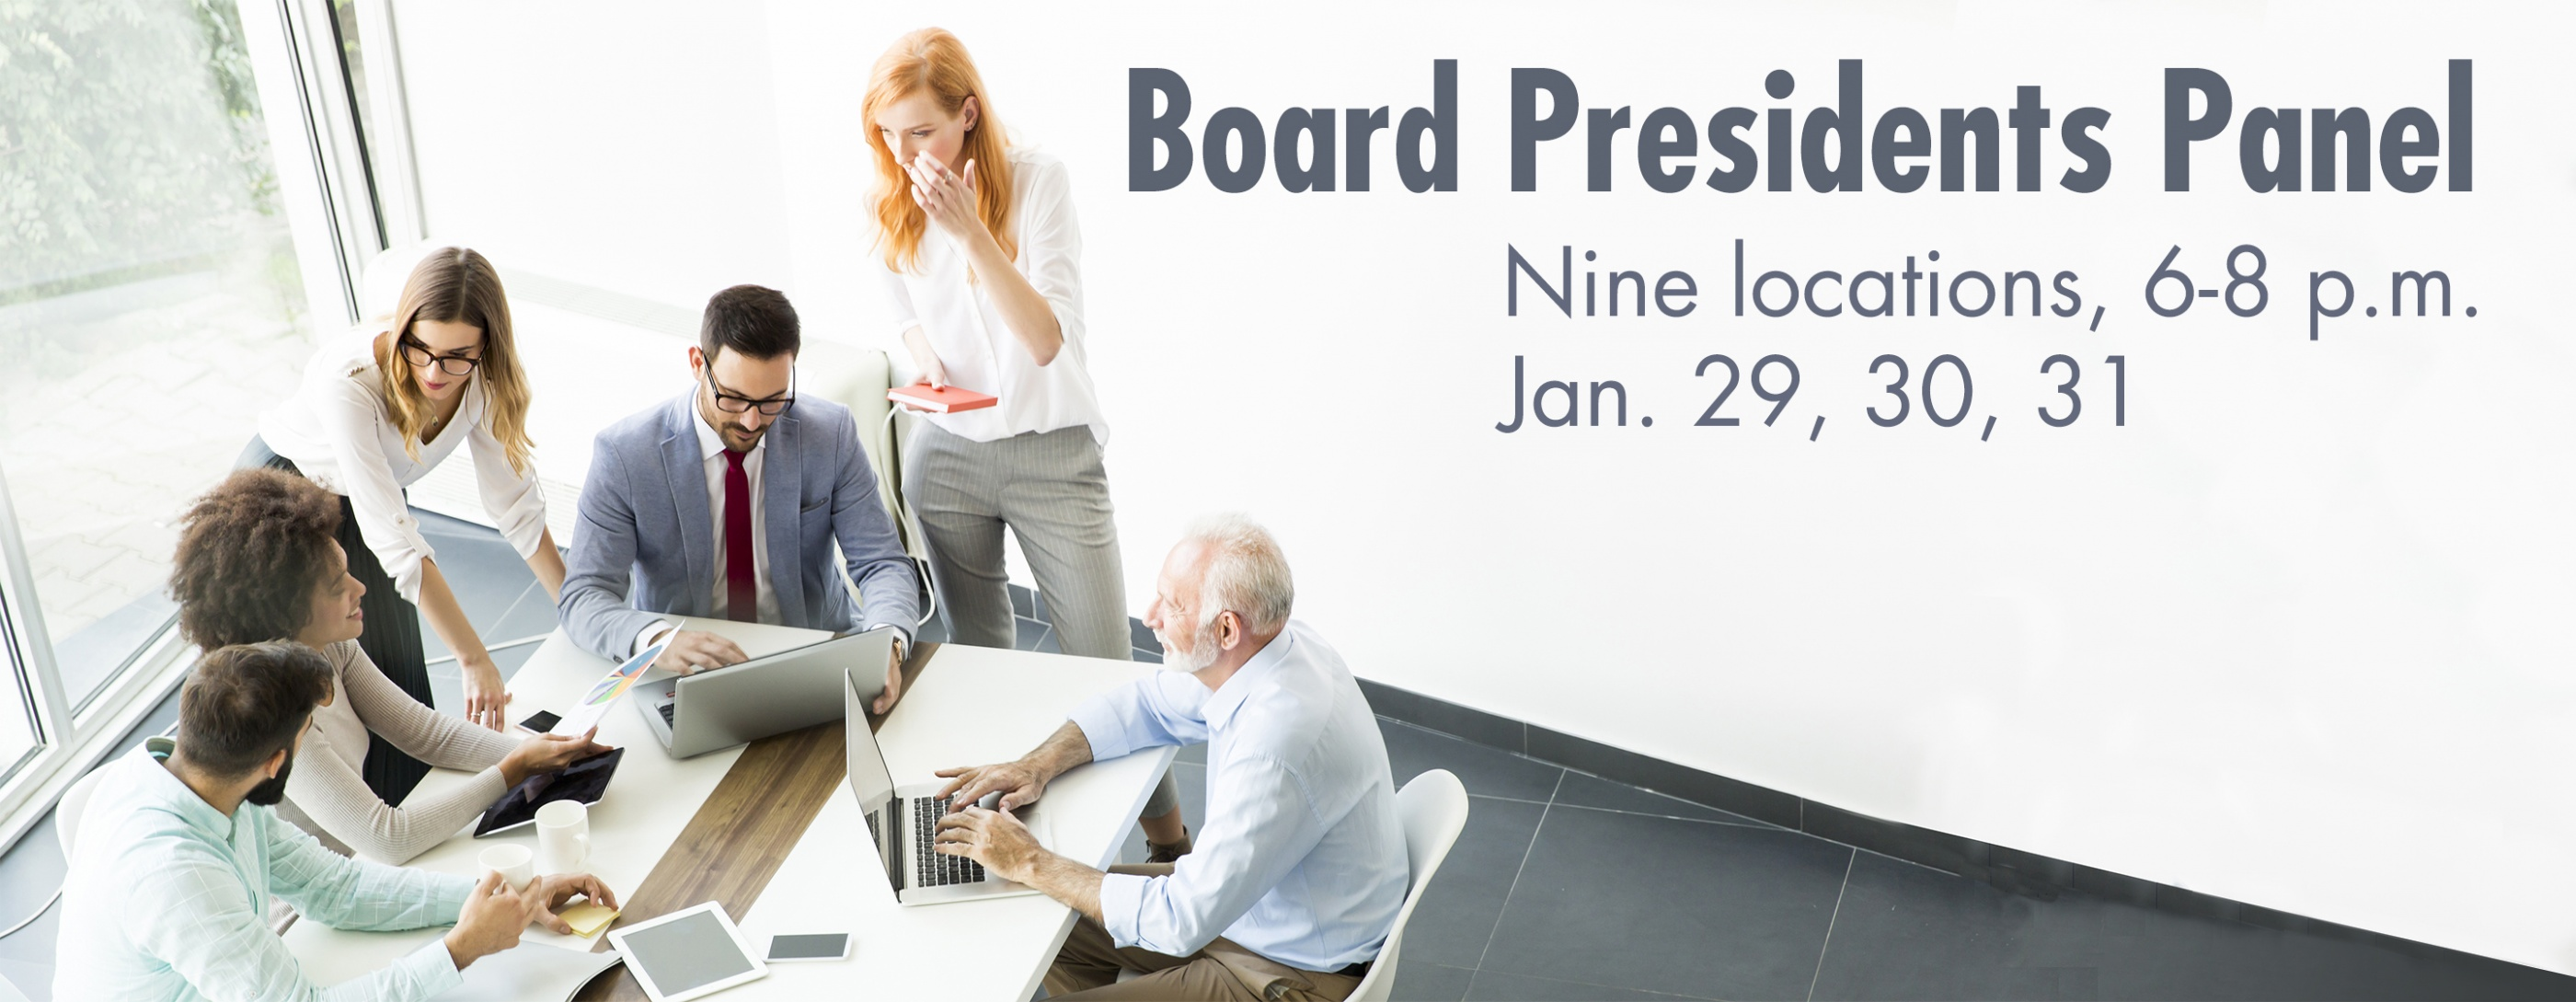 Board Presidents Panel